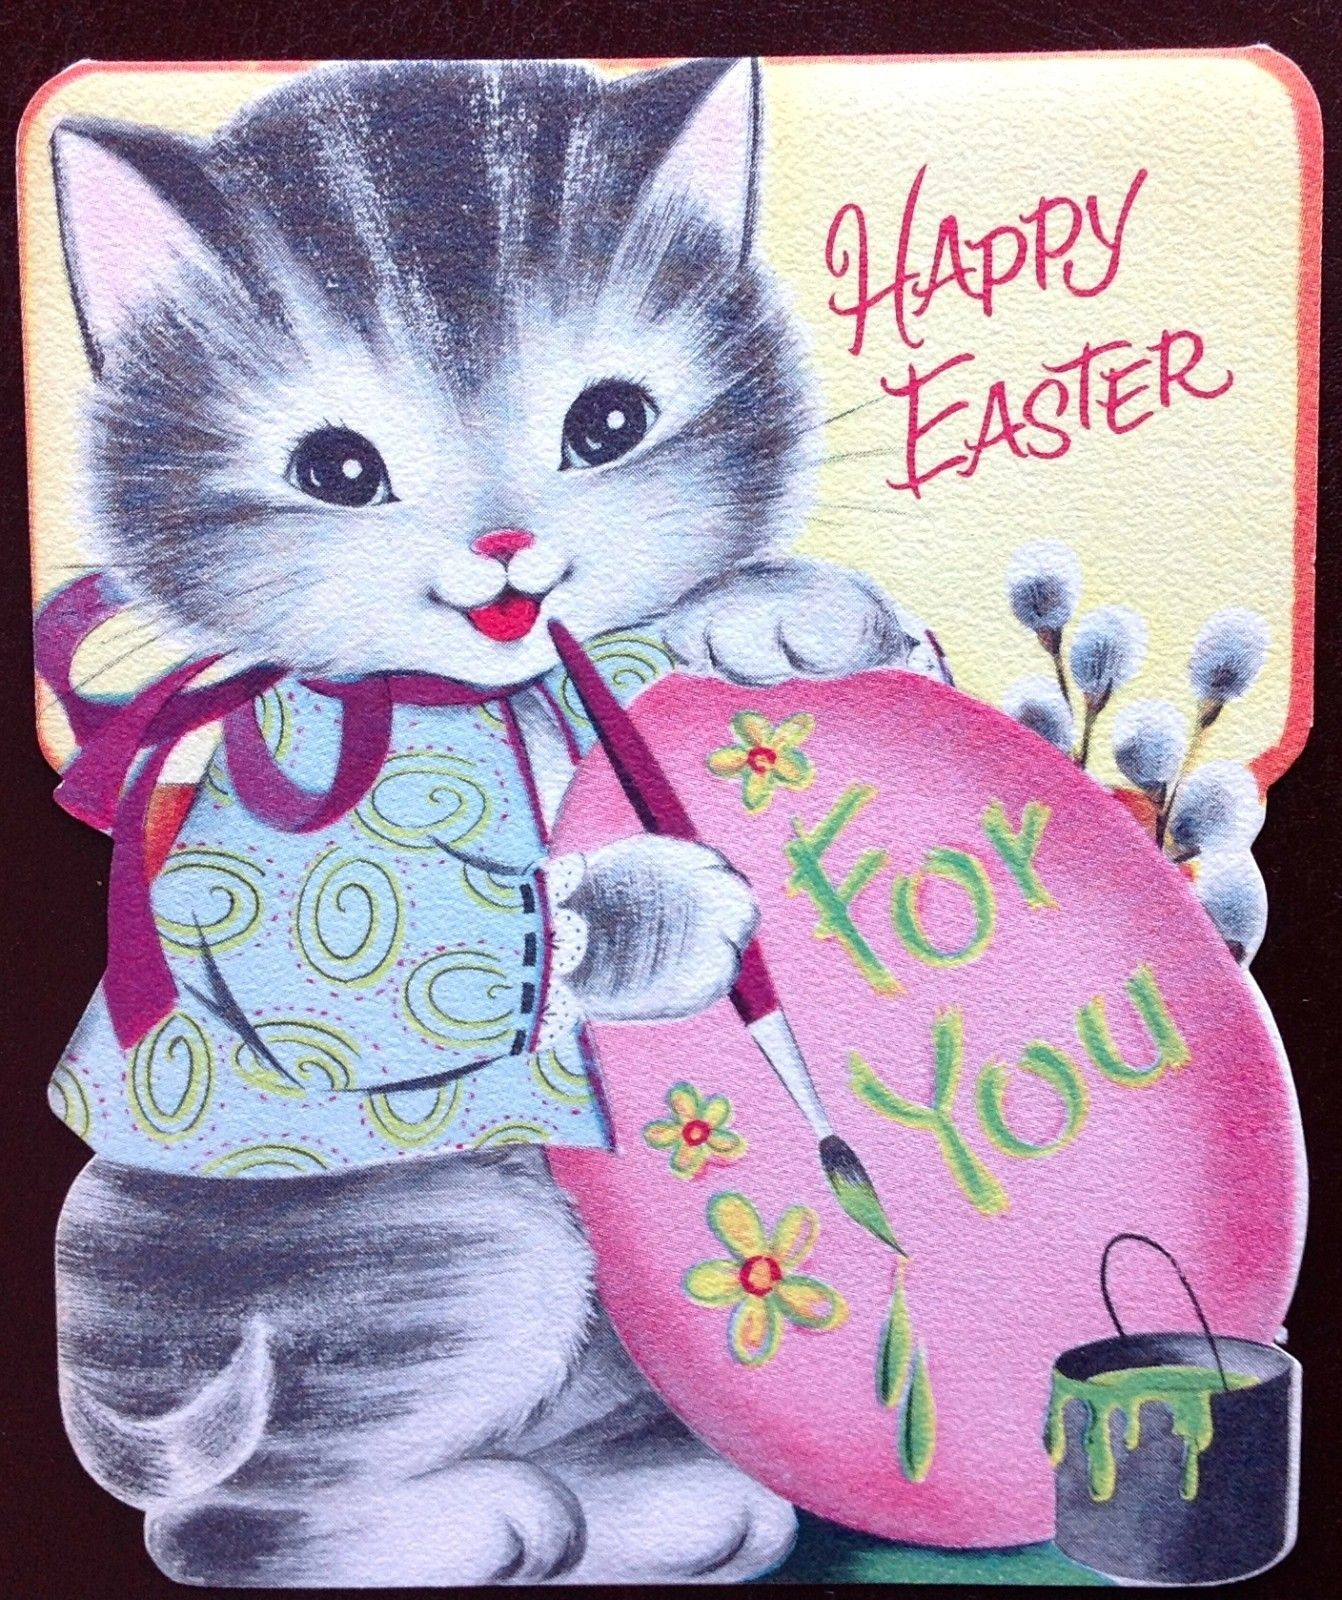 Vtg Norcross Easter Greeting Card Cute Artist Kitten Painting Giant Pink Egg Easter Greeting Cards Cat Cards Vintage Greeting Cards